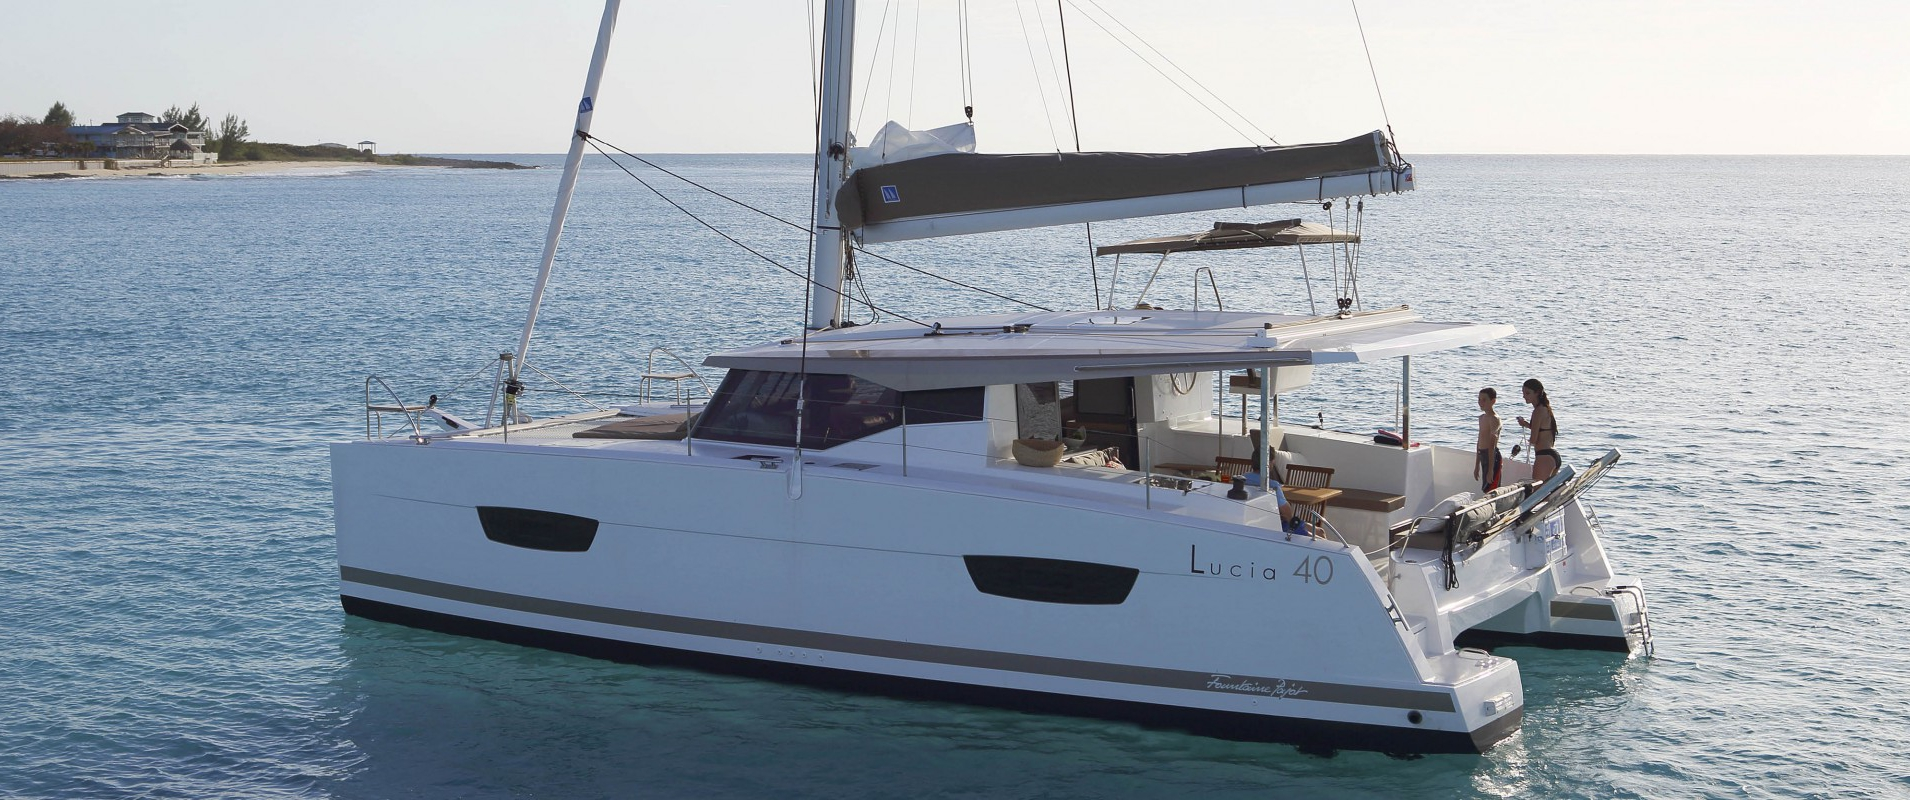 Fountaine Pajot Lucia 40, Pearl